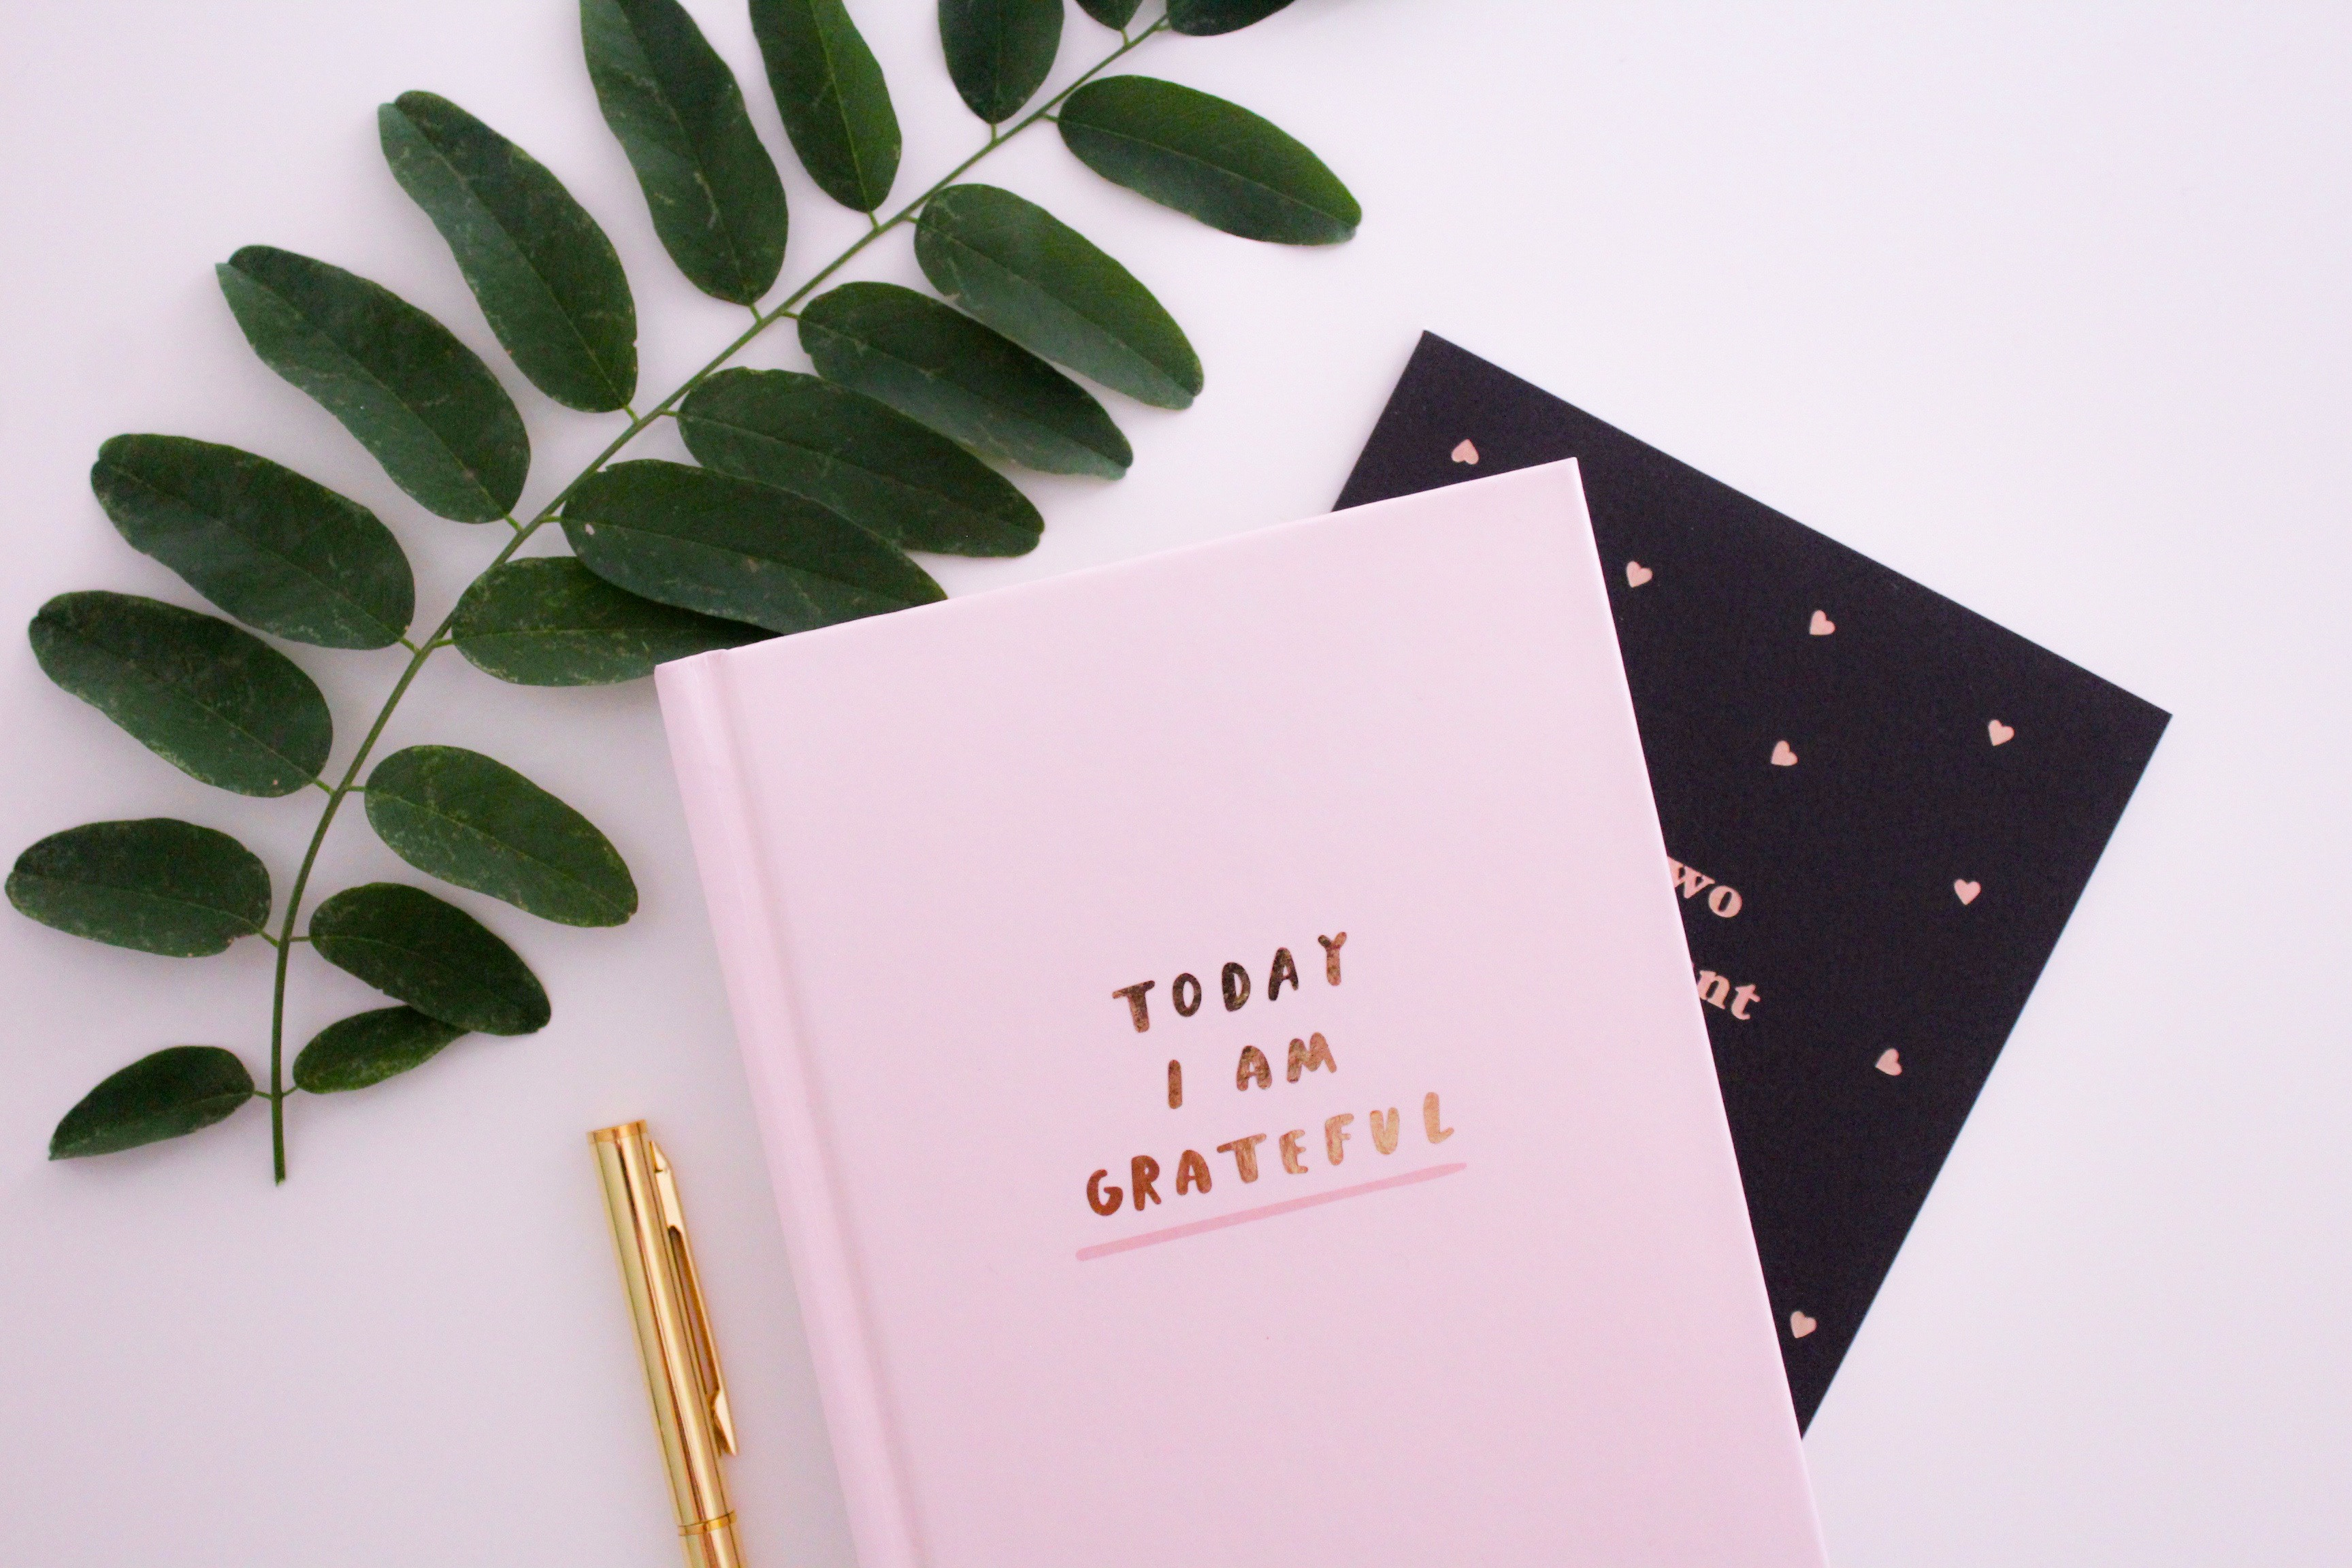 5 ways to Cultivate Gratitude